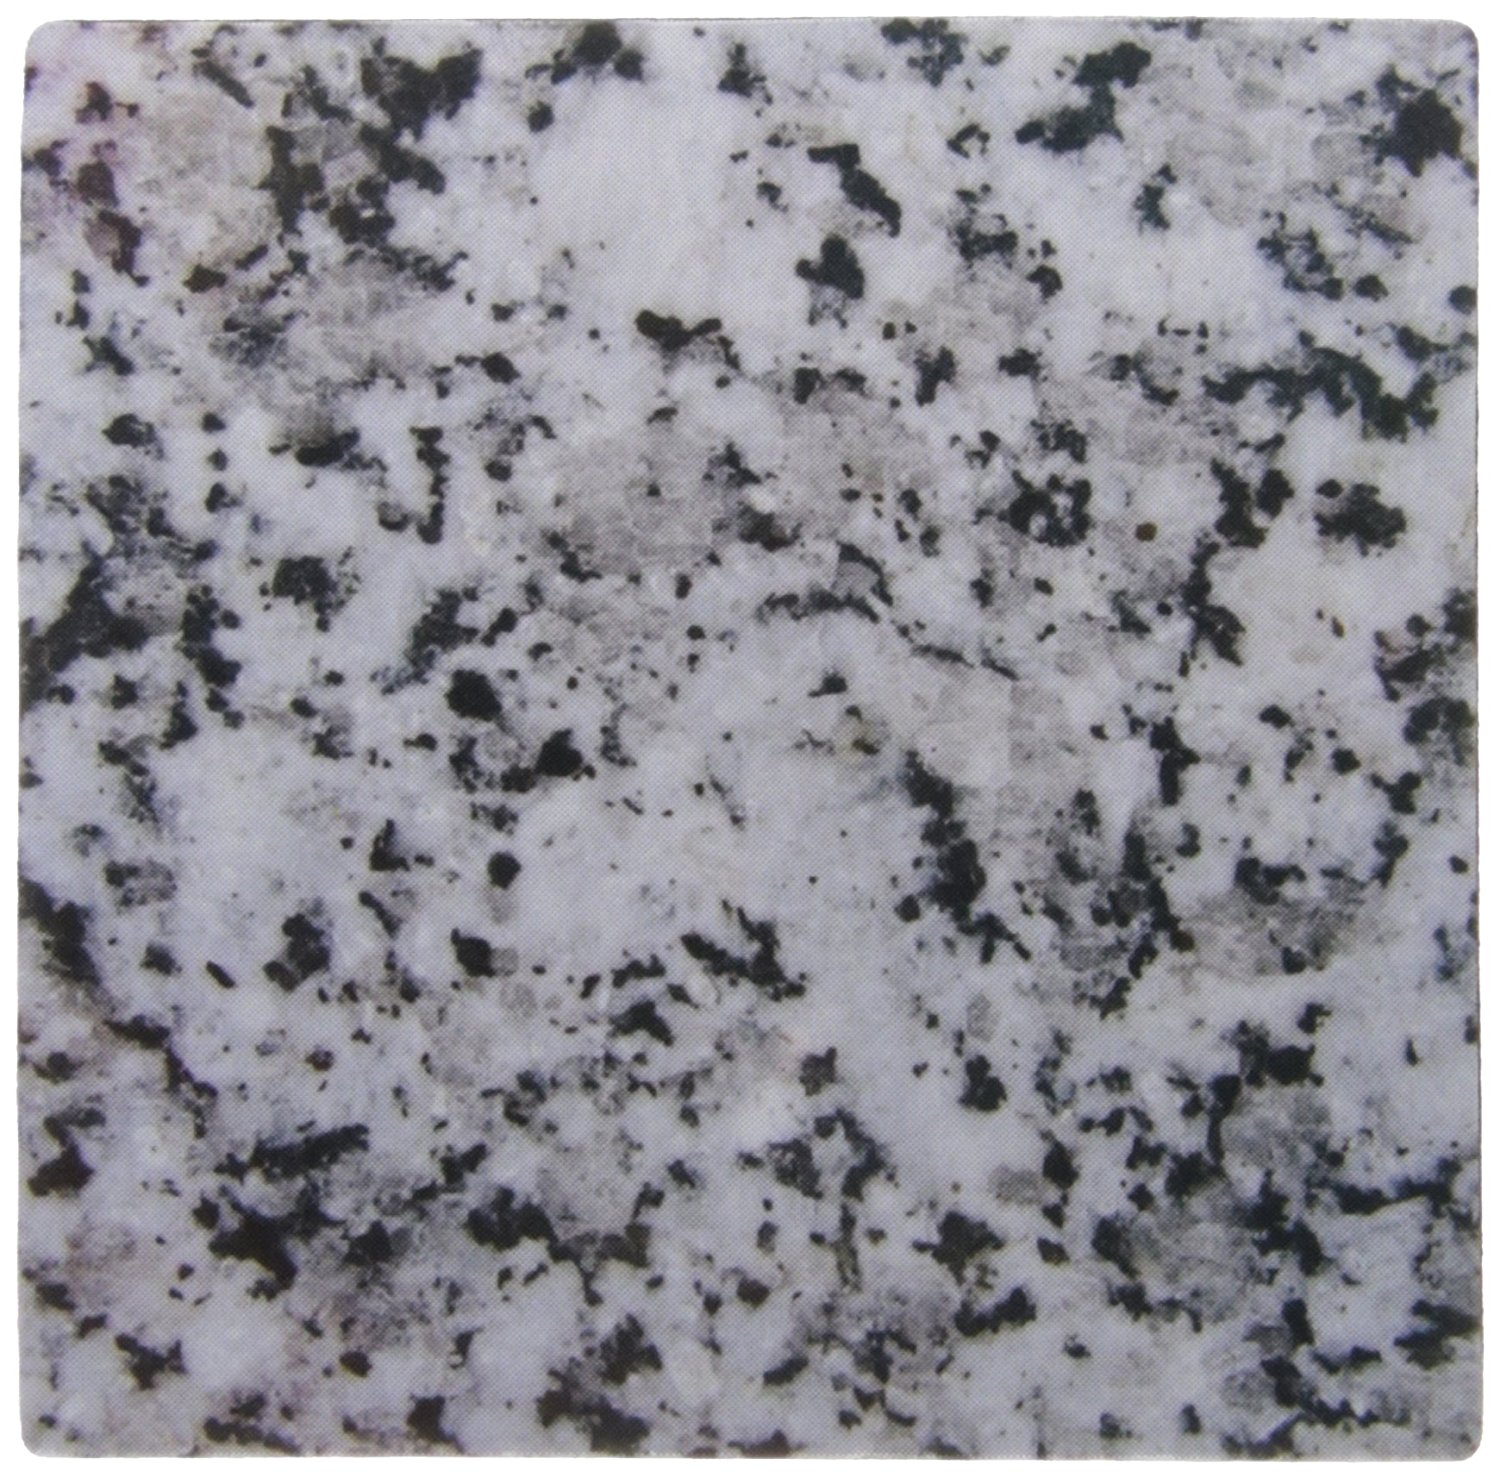 3dRose LLC 8 x 8 x 0.25 Inches Mouse Pad, Print of Grey Granite Rock Texture Photo Graphic, Gray/Black Crystals, Polished Igneous Stone Geology (mp_157792_1)